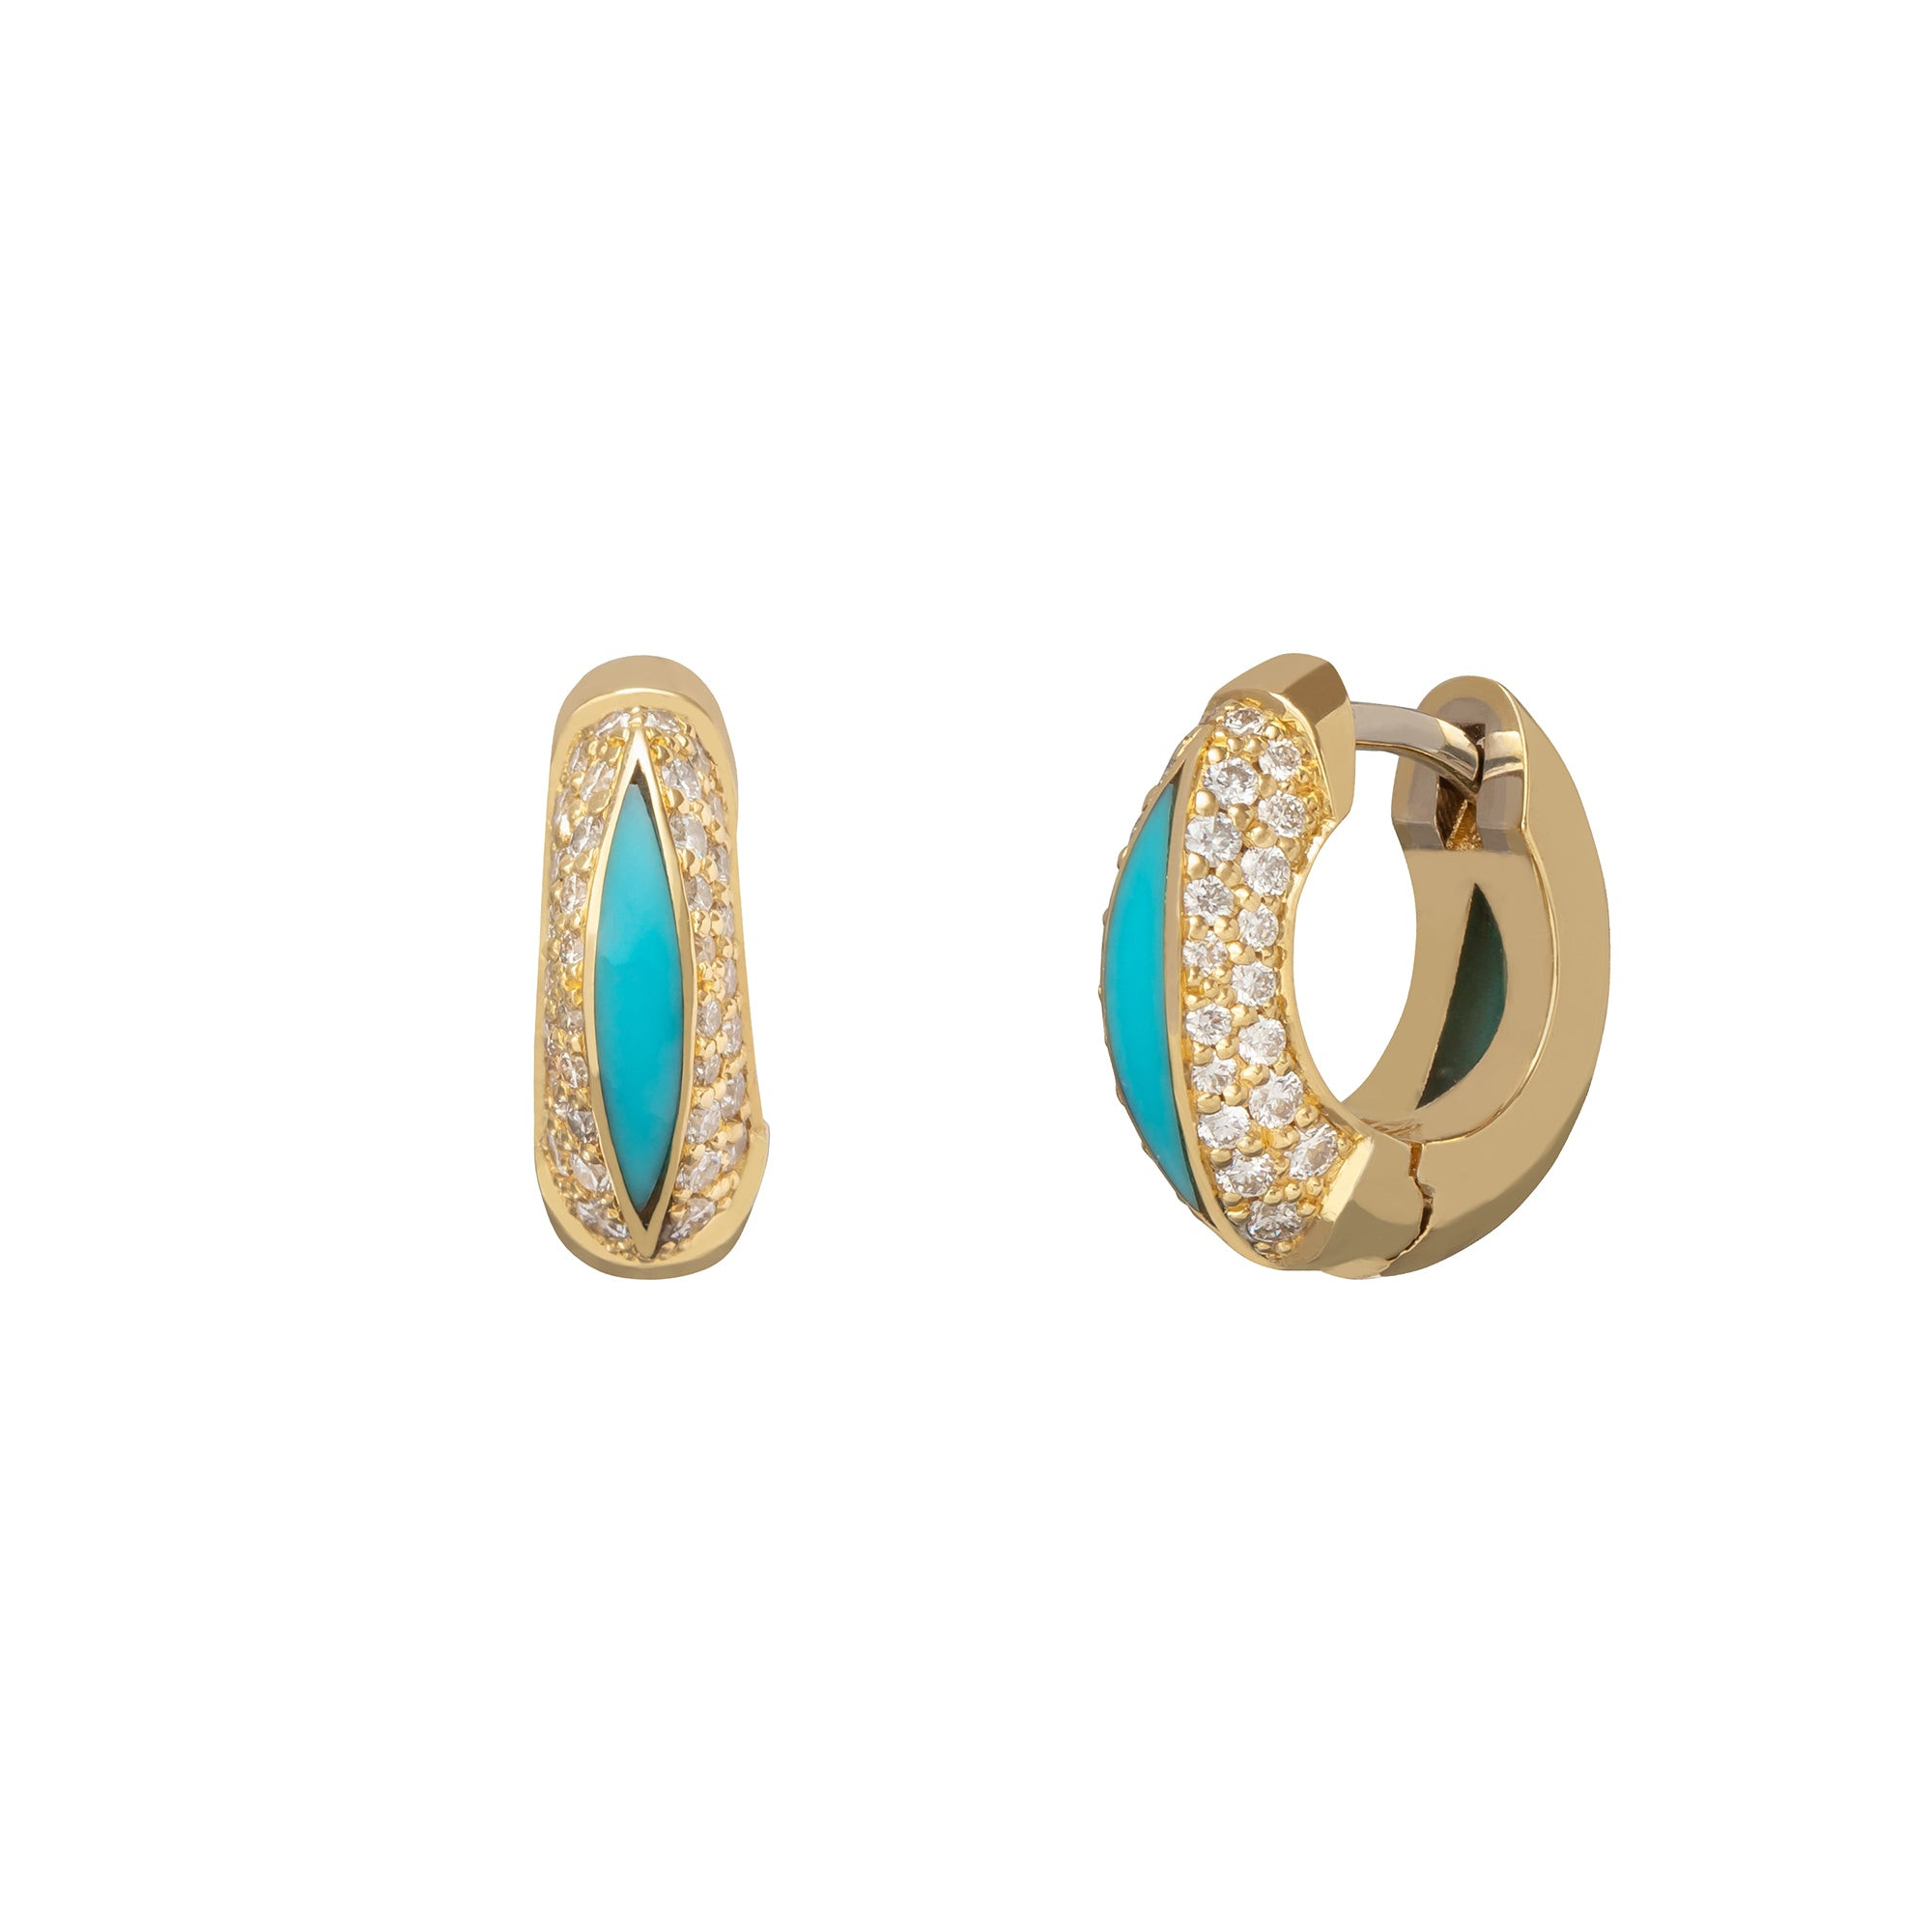 Andy Lif Jewelry The Perfect Huggie Diamond Earrings Turquoise